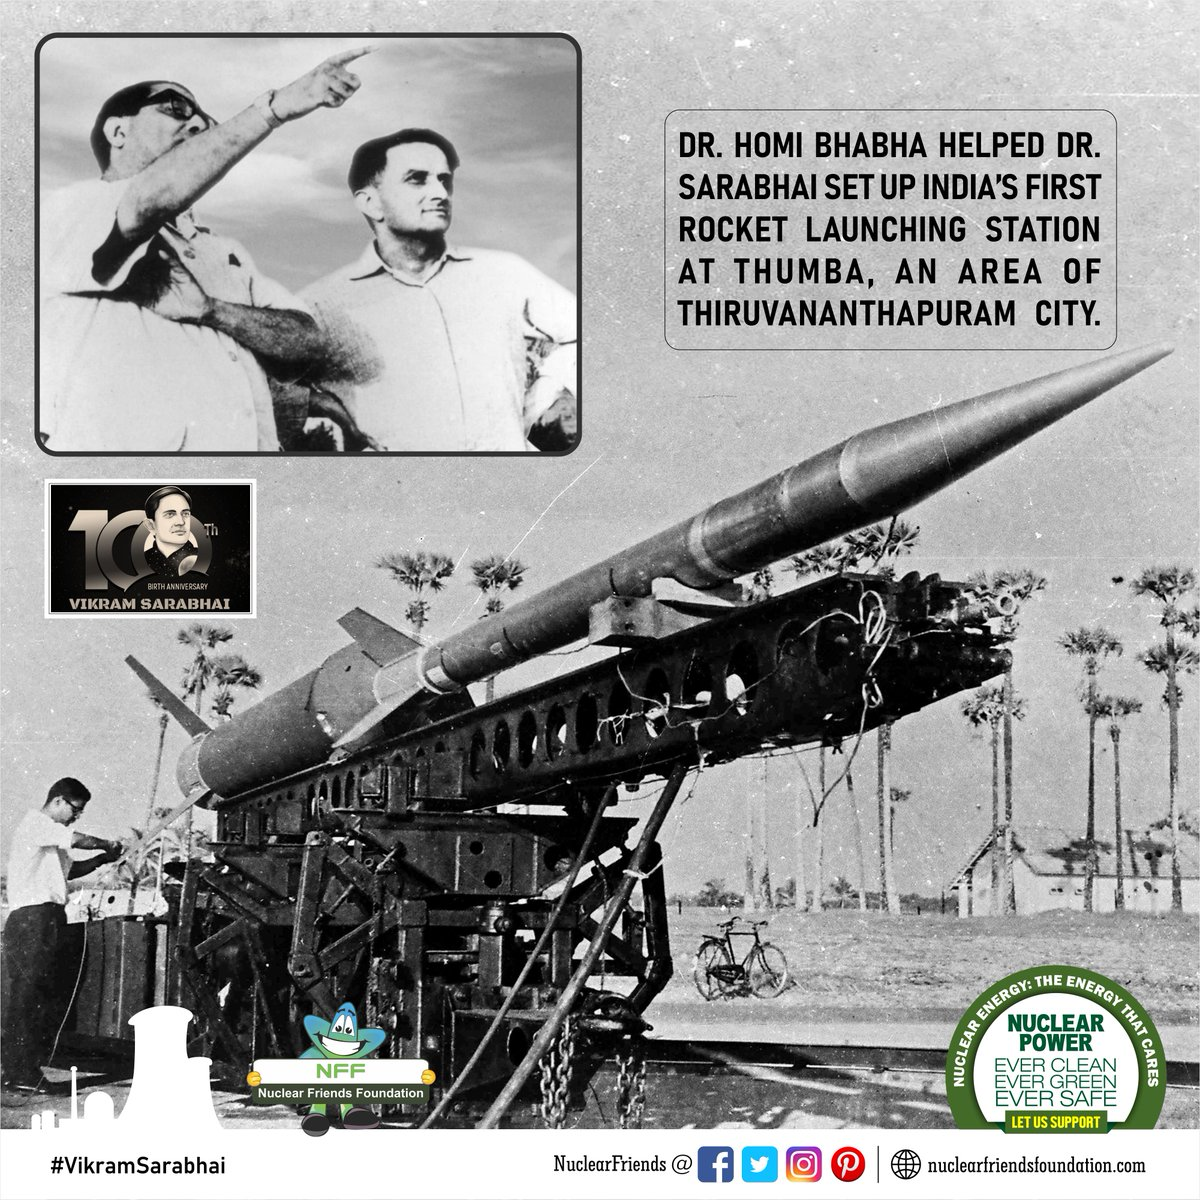 Dr. Homi Bhabha helped Dr. Sarabhai set up India's FIRST Rocket Launching Station at Thumba, an area of Thiruvananthapuram city  Reach us @ http://nuclearfriendsfoundation.com  #NuclearPower #NuclearEnergy #Evergreen  #NuclearFacts  #MondayMotivation #VikramSarabhai @iaeaorg @W_Nuclear_News